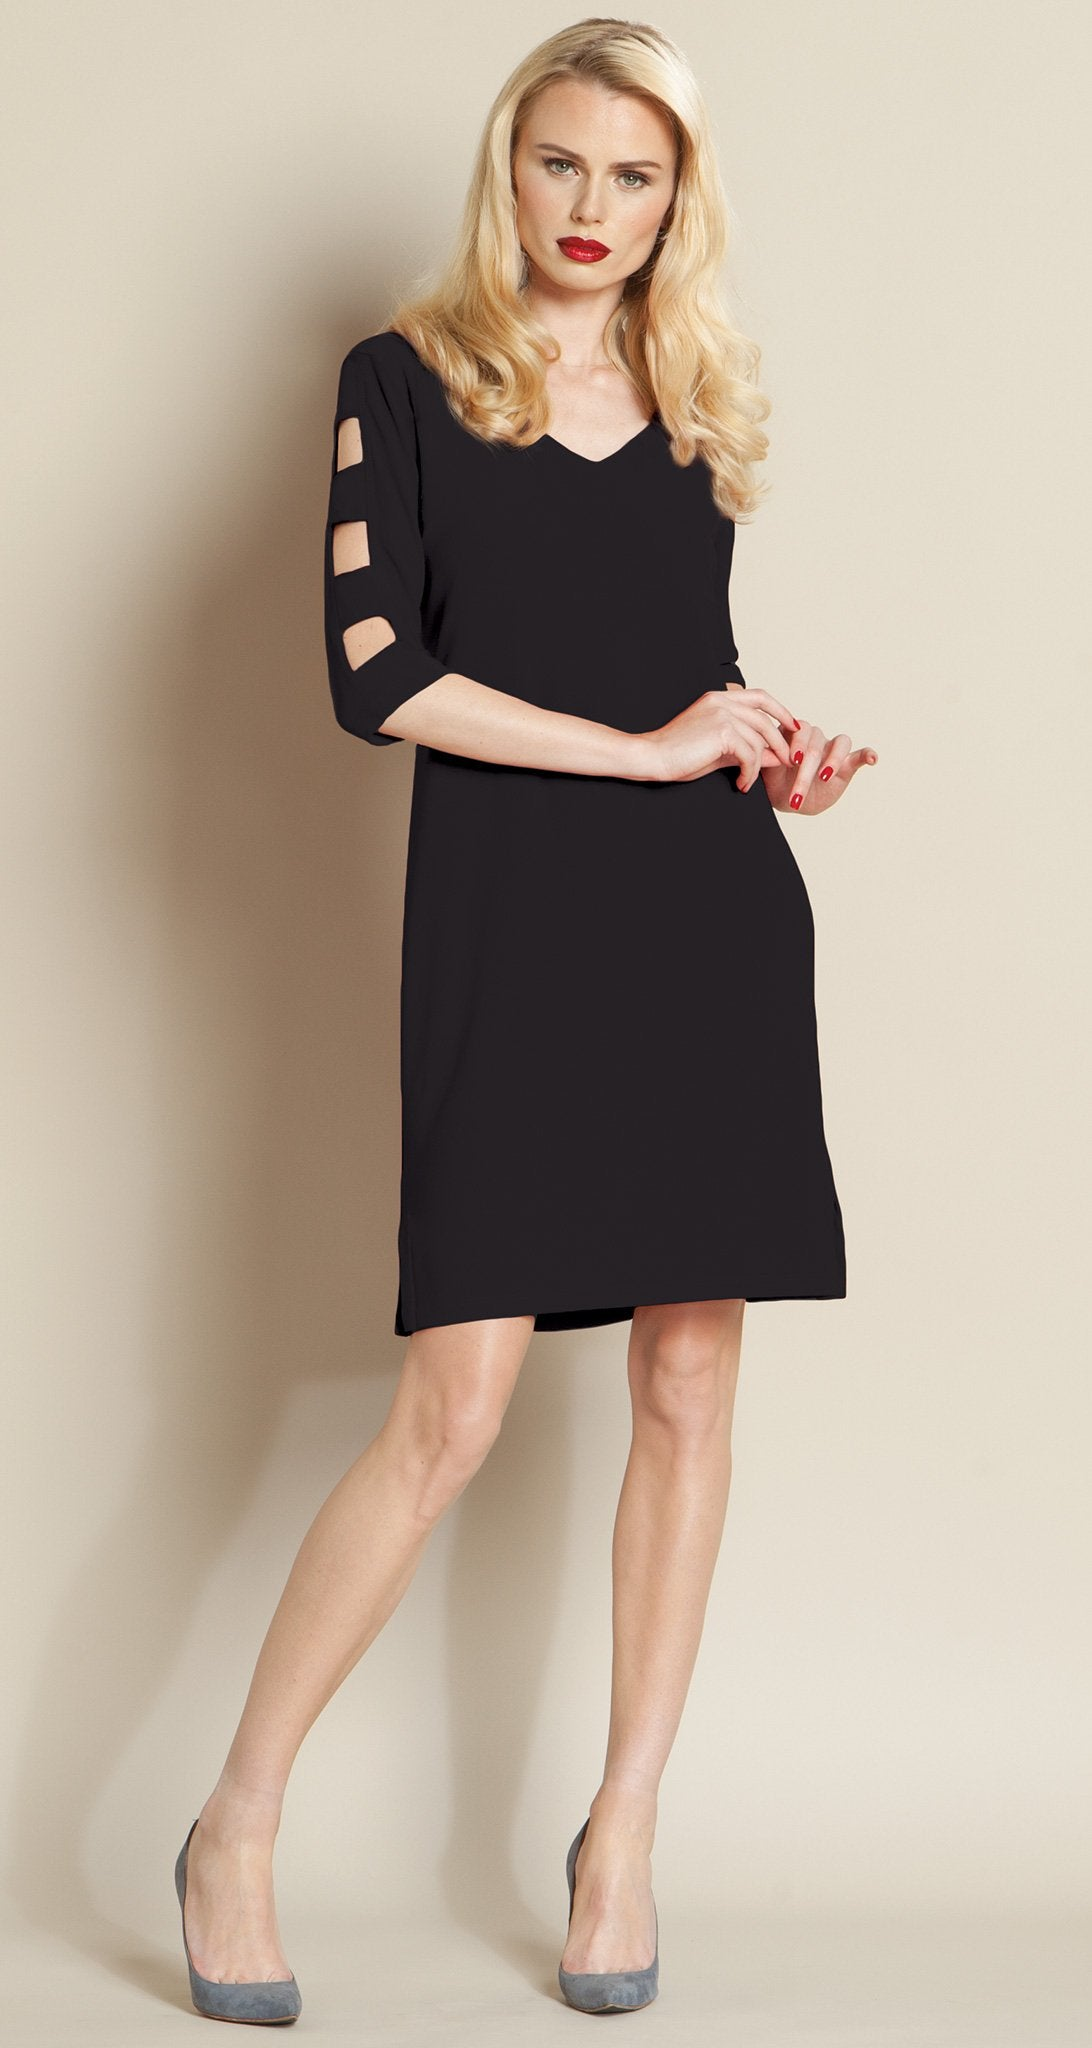 Ladder Sleeve Dress - Black